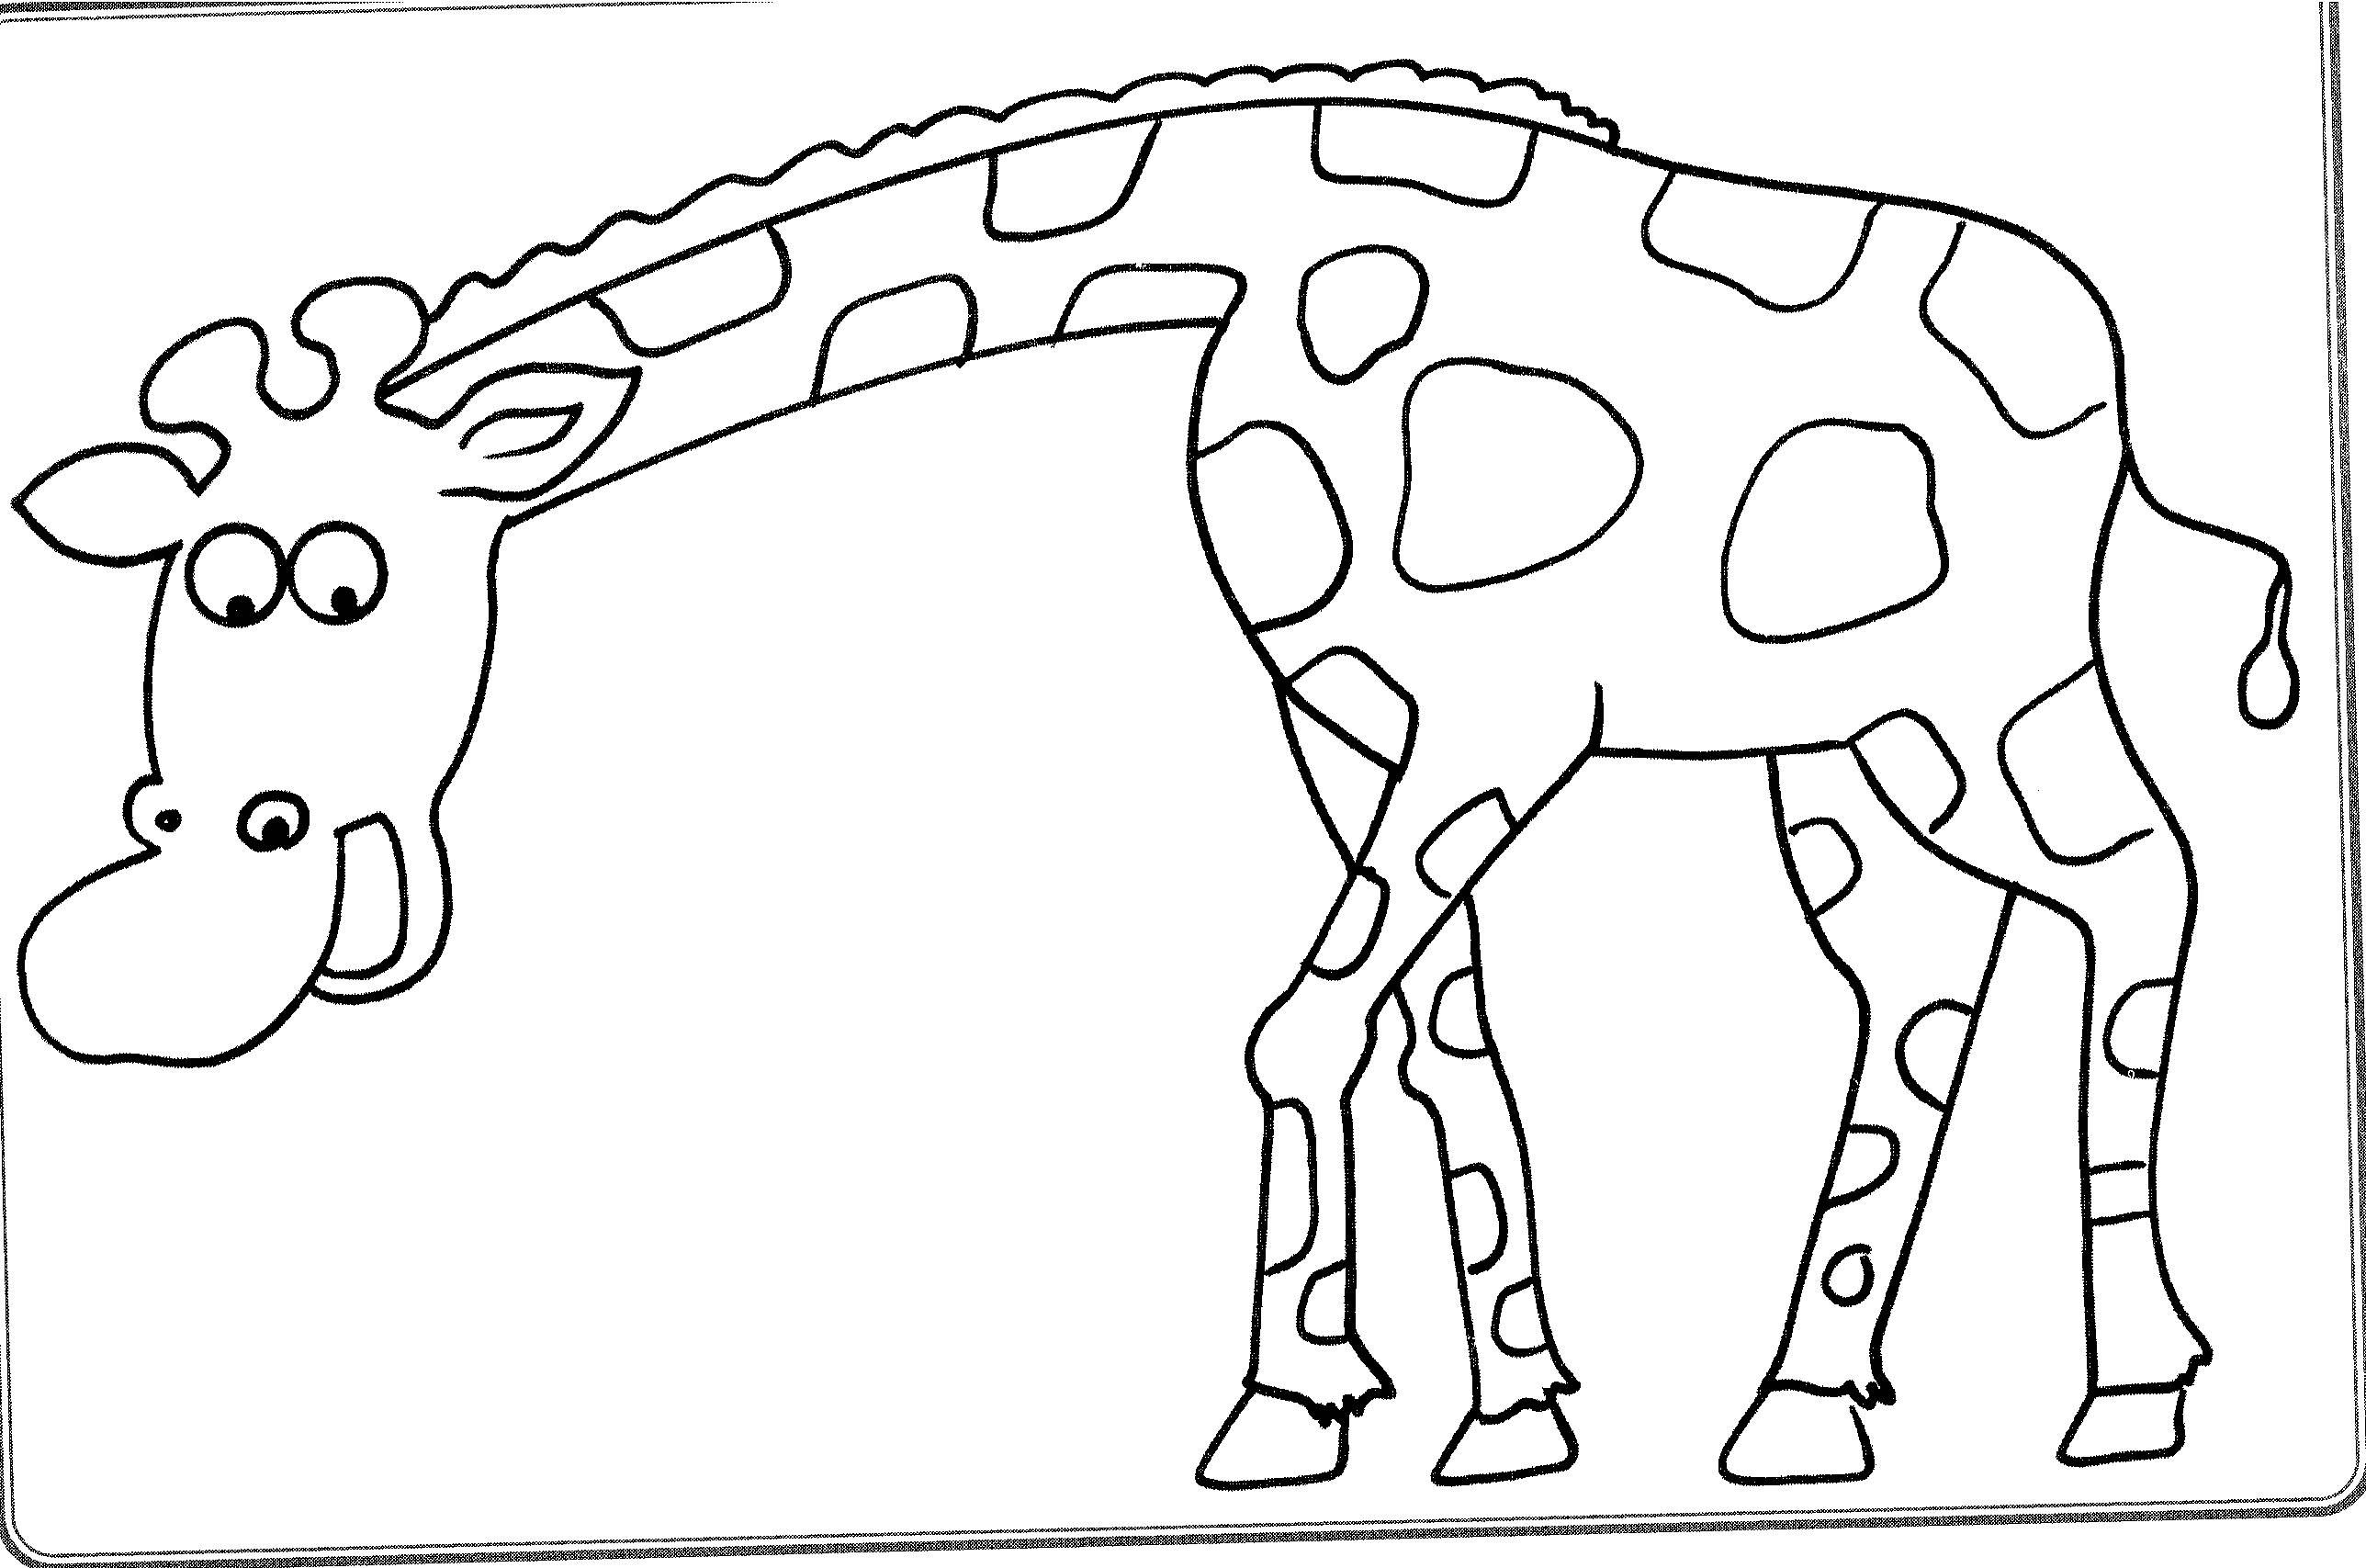 full page coloring pages for kids - Full Page Coloring Sheets